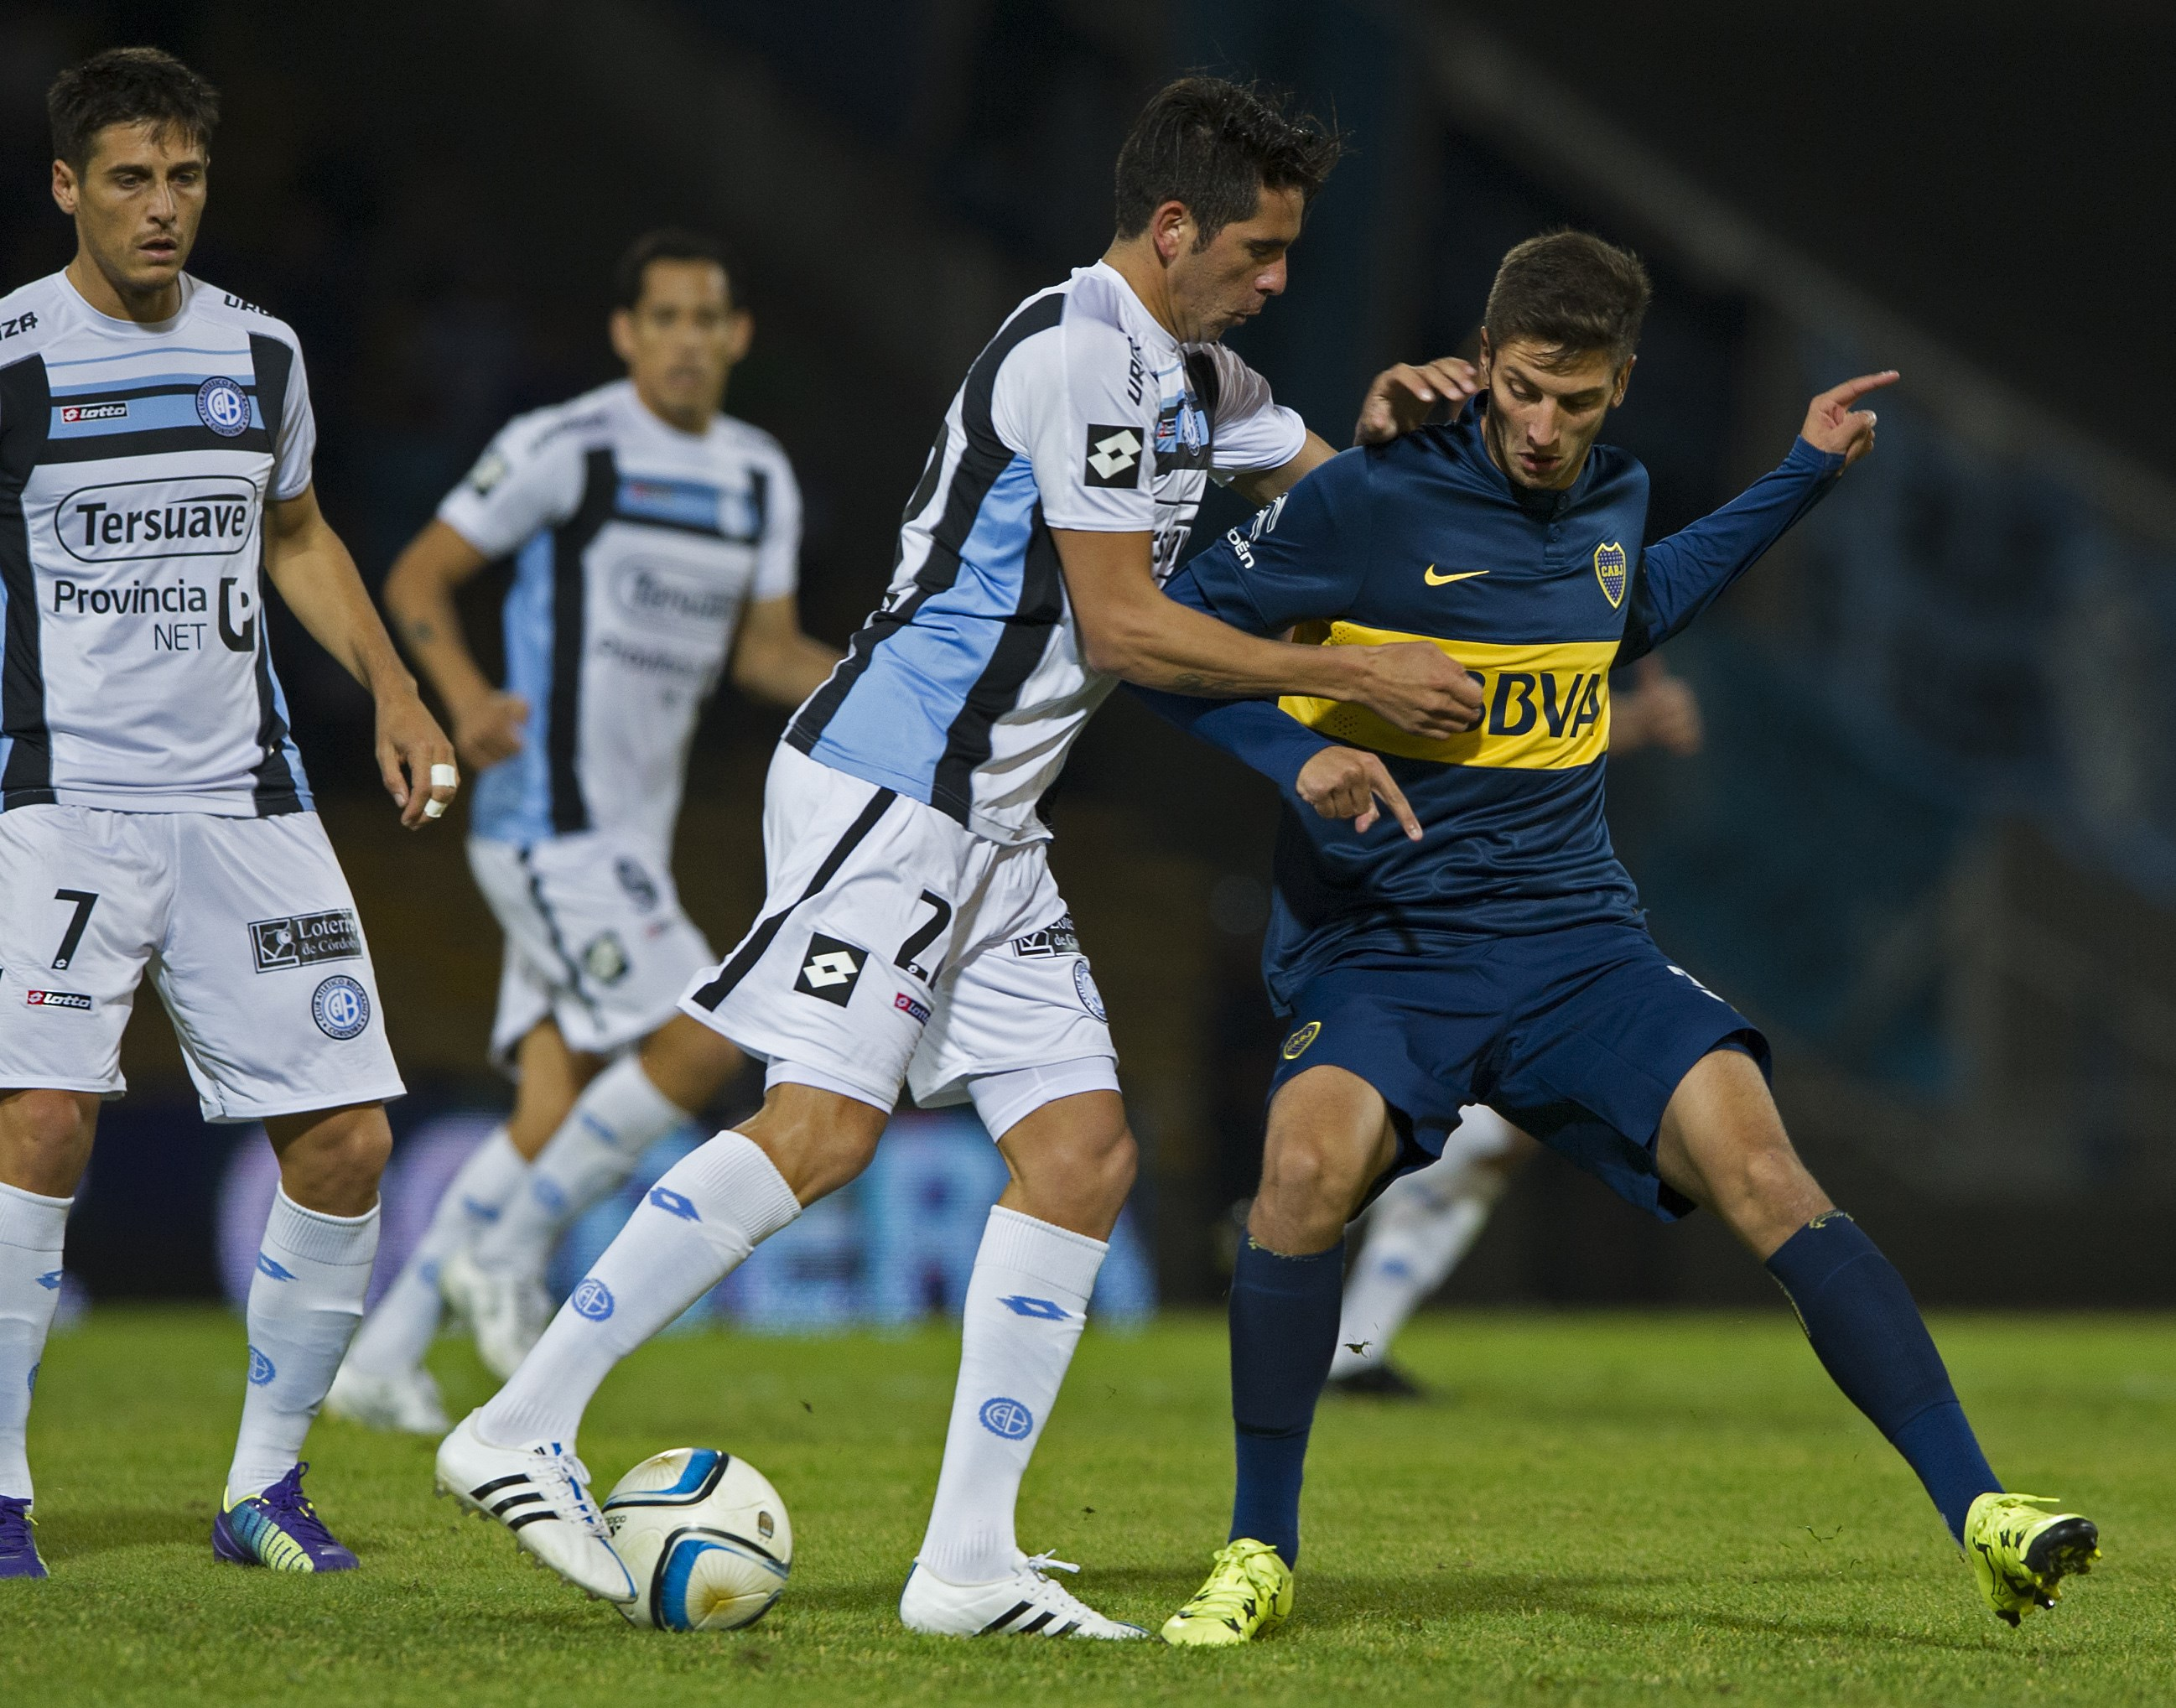 Belgrano's midfielder Lucas Parodi (C) vies for the ball with Boca Juniors' midfielder Rodrigo Bentancur (R) during their Argentina First Division football match at Mario Alberto Kempes stadium in Cordoba, Argentina, on July 26, 2015. AFP PHOTO / ALEJANDRO PAGNI (Photo credit should read ALEJANDRO PAGNI/AFP/Getty Images)